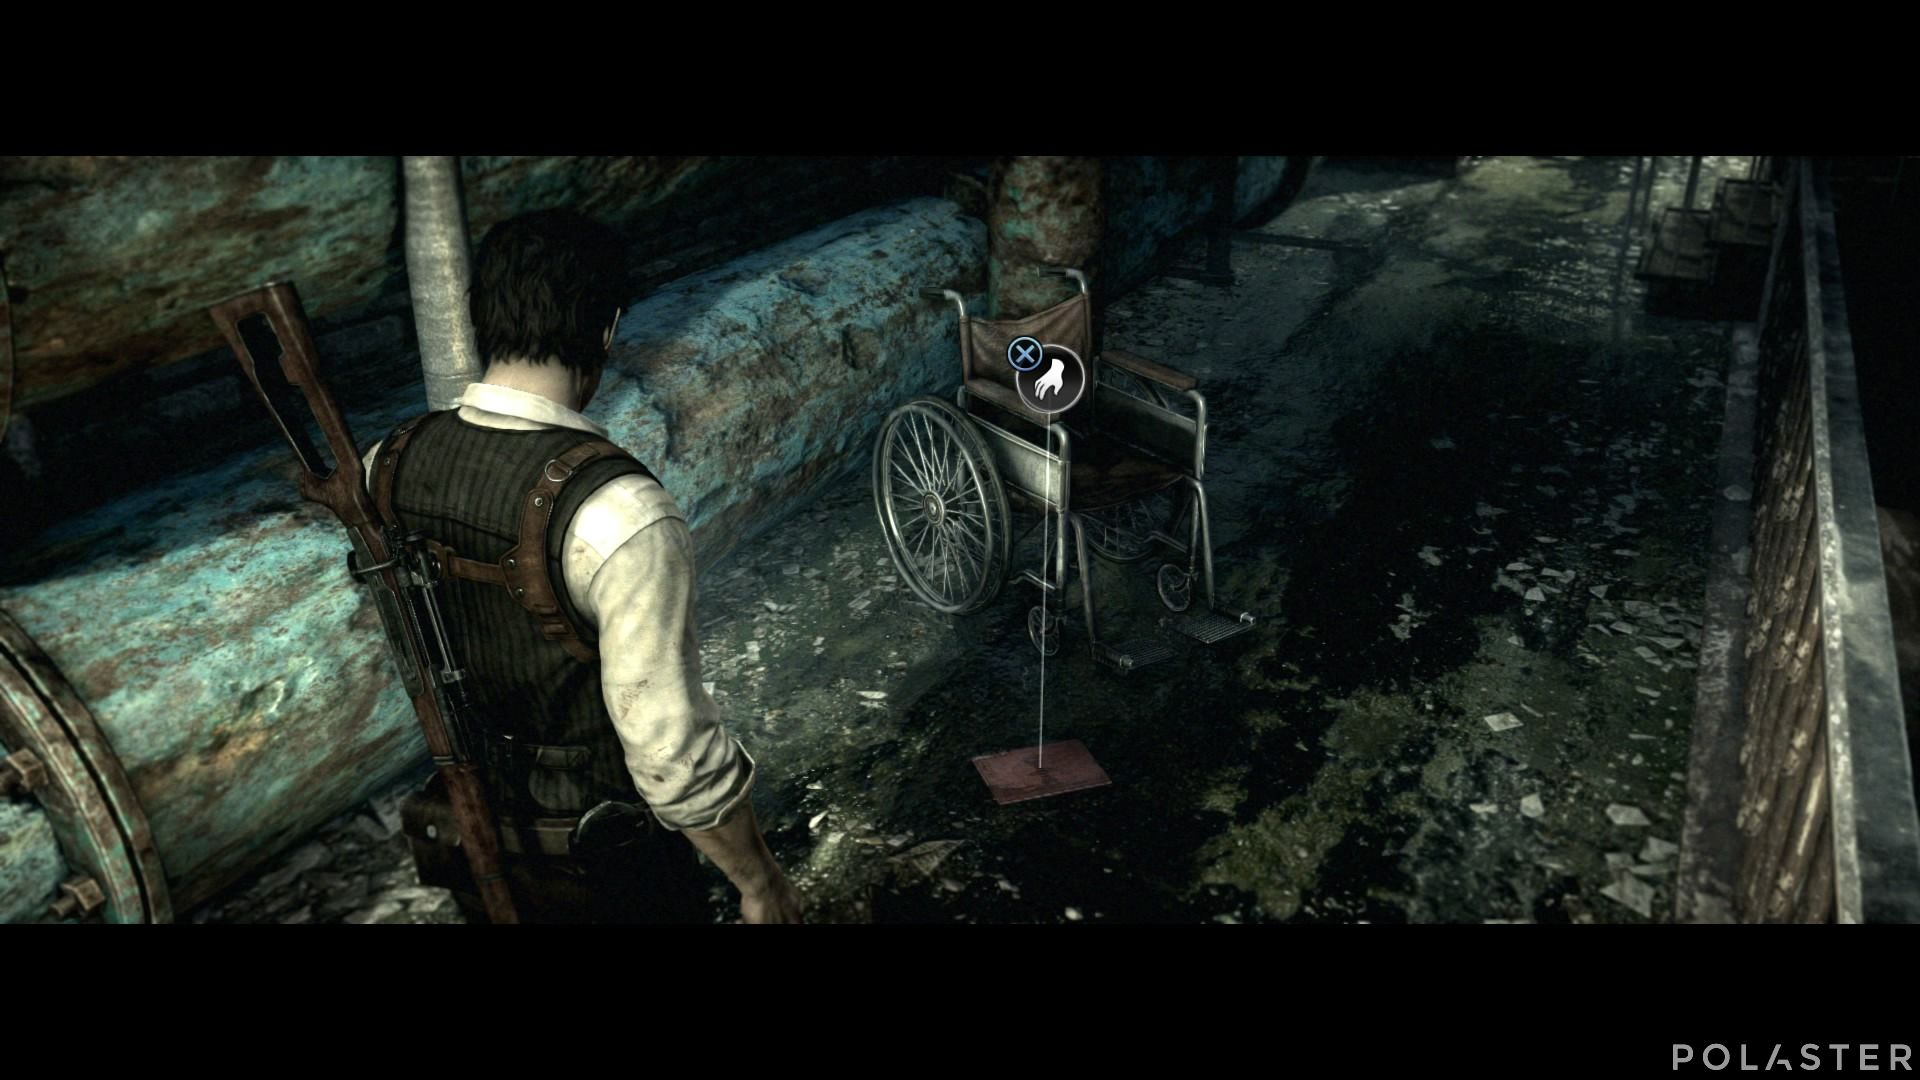 The Evil Within - Coleccionables - Documento: Nota reciente de la alcantarilla